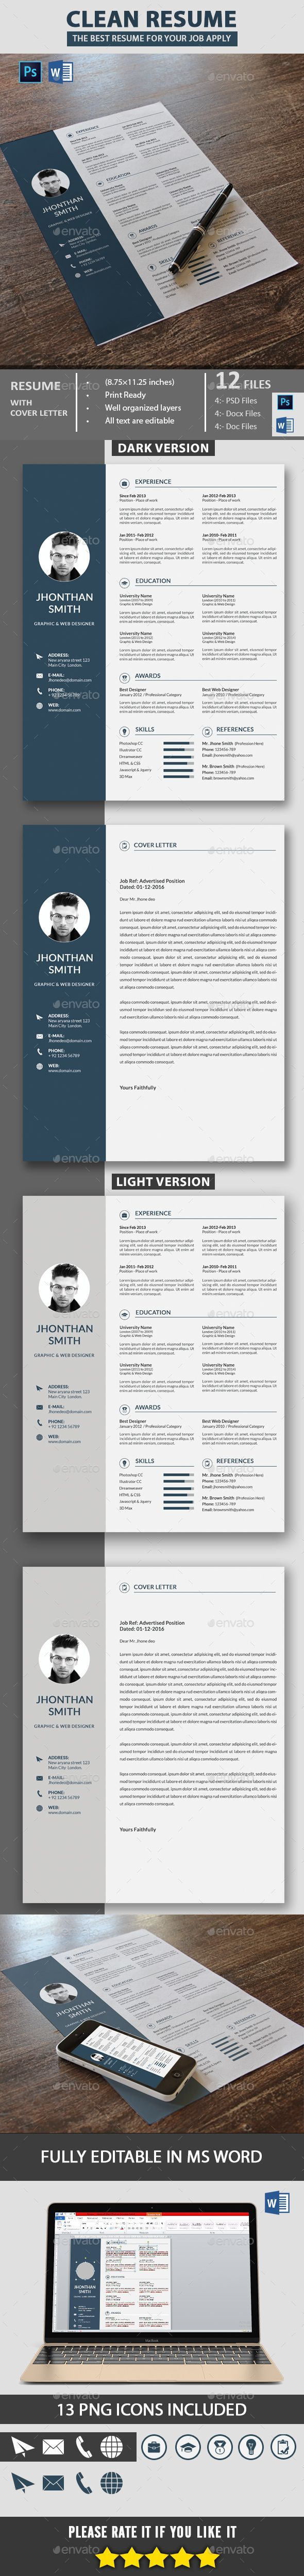 Professional Resume Template Bundle | CV Package with Cover Letters ...